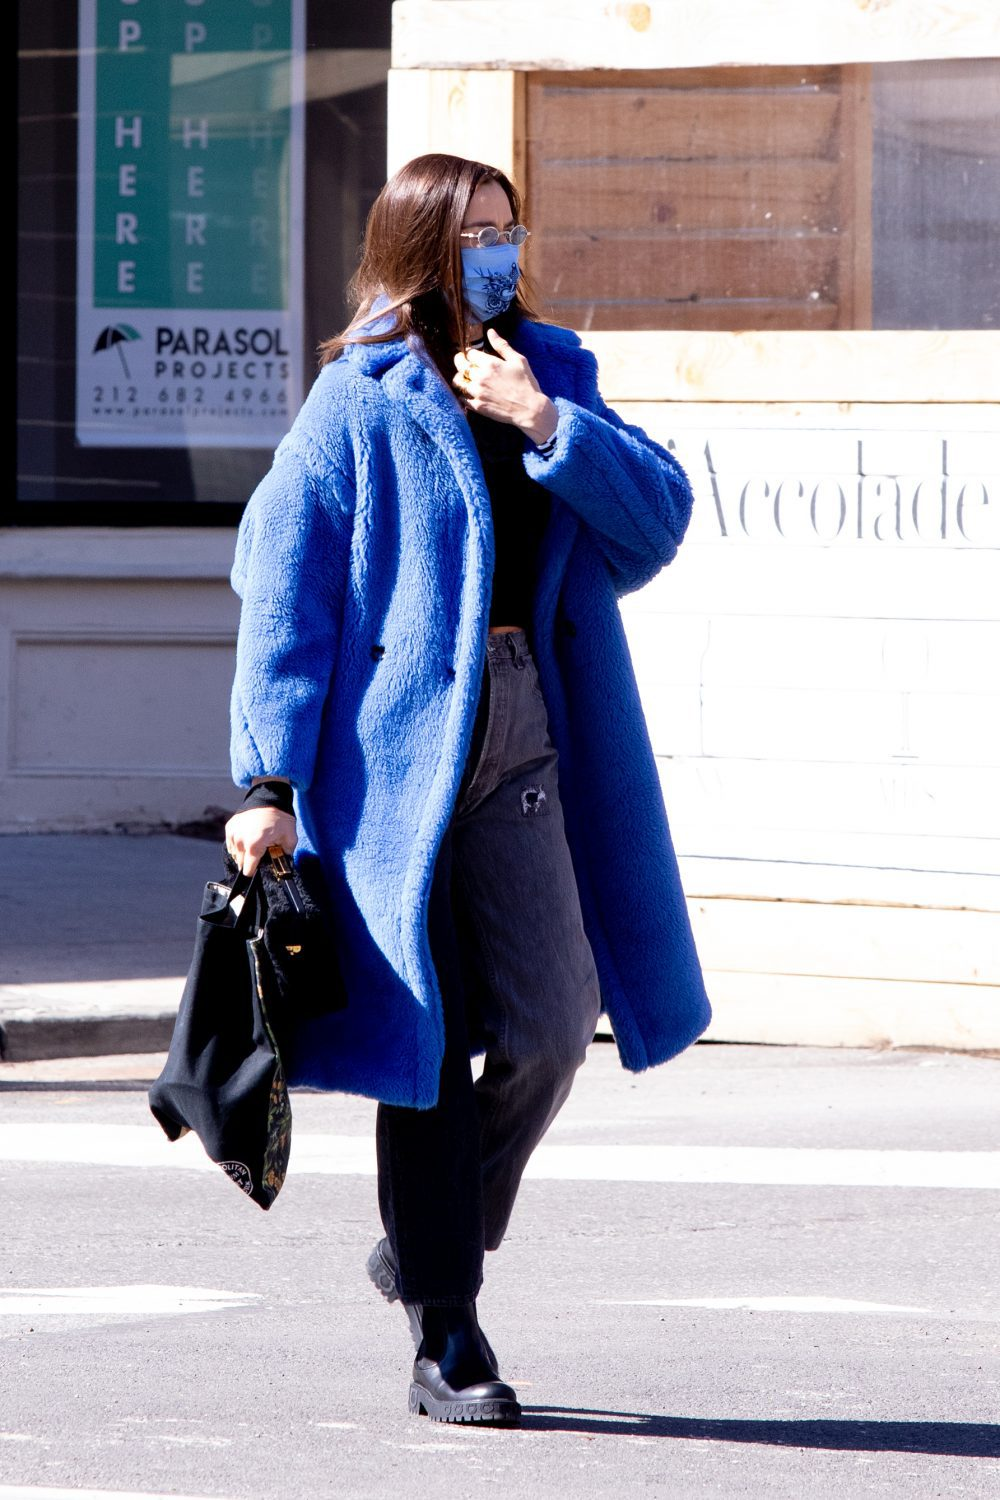 Irina Shayk Sighting in NYC